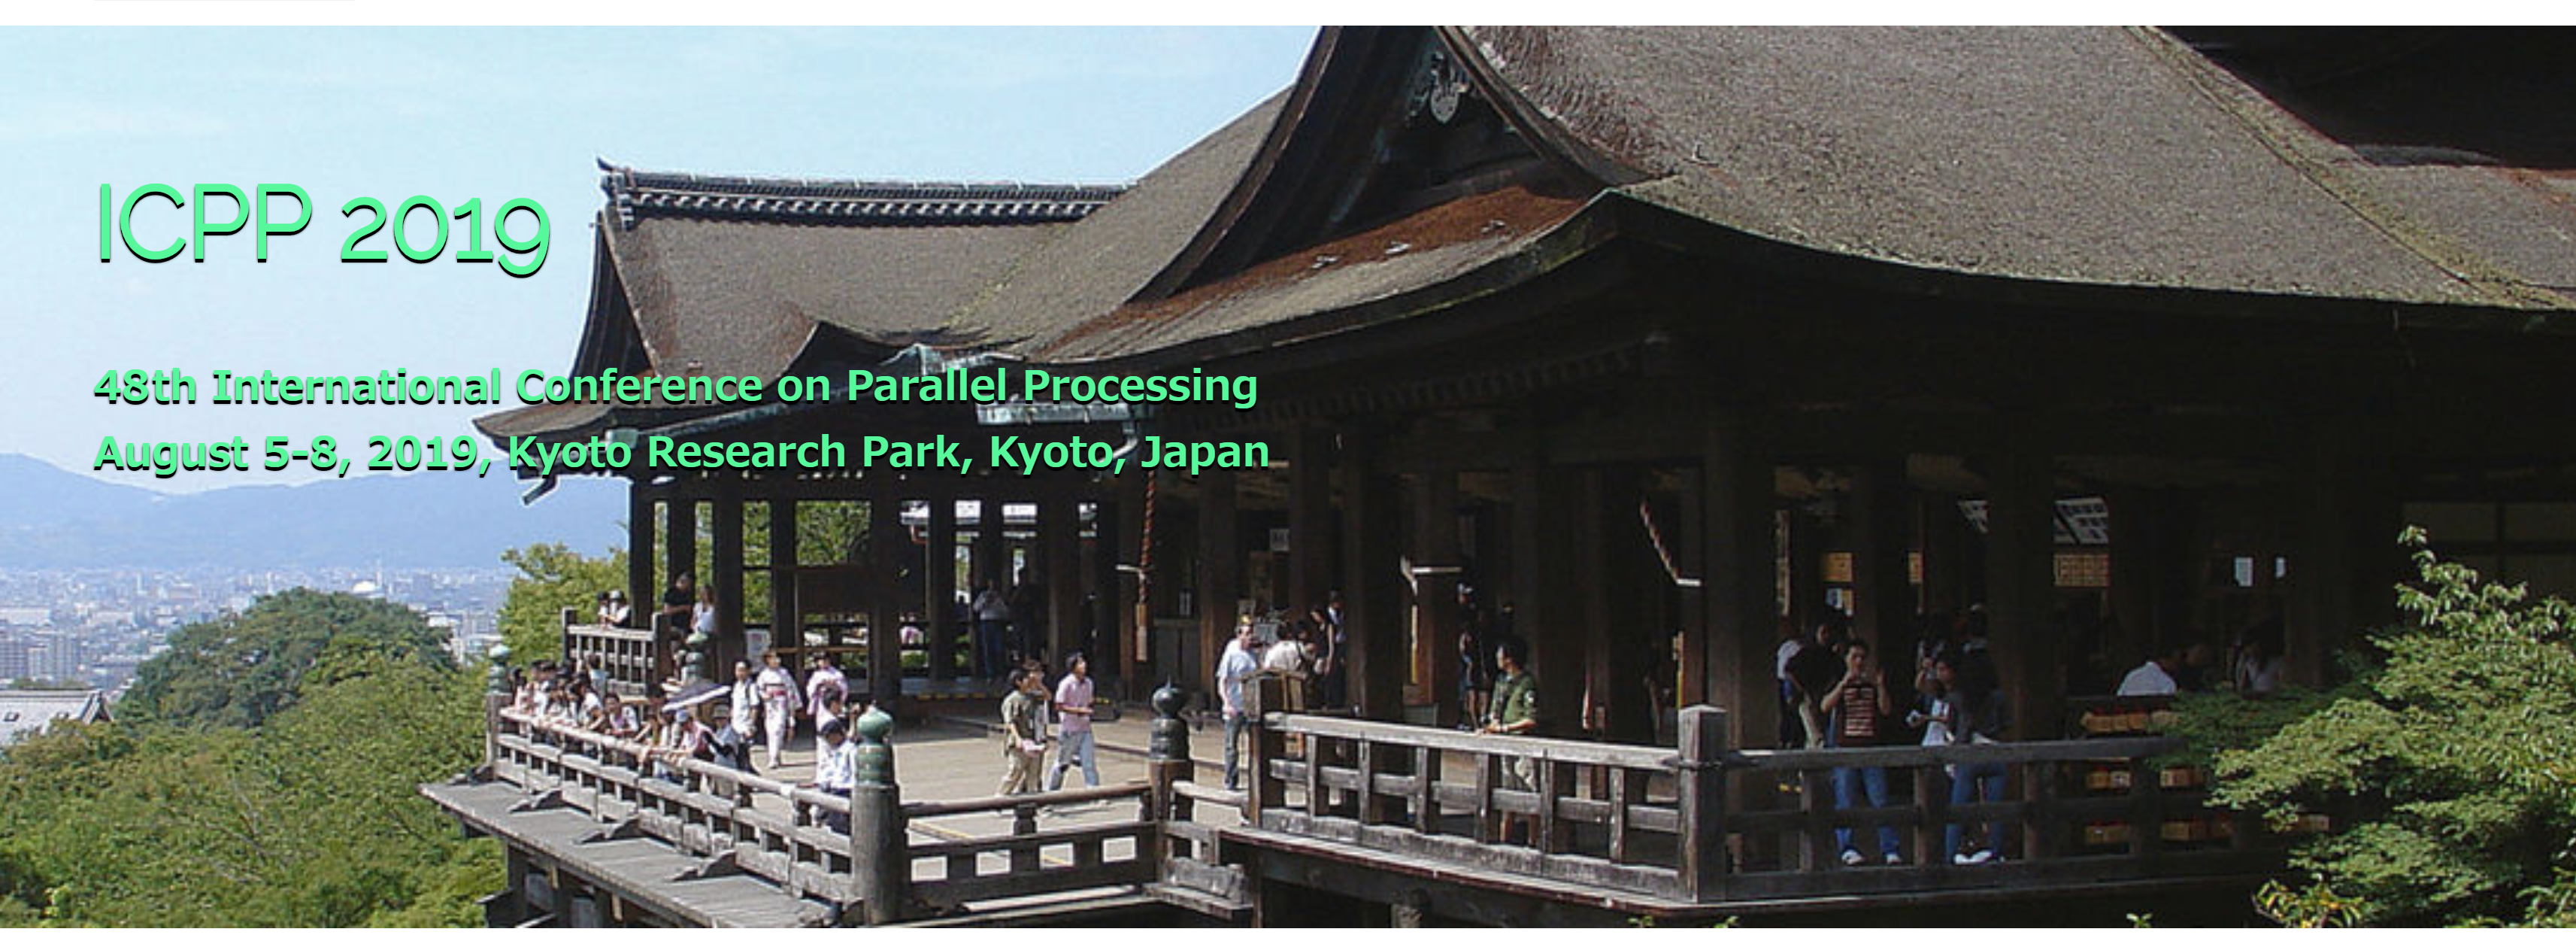 イベント出展:ICPP (International Conference on Parallel Processing)